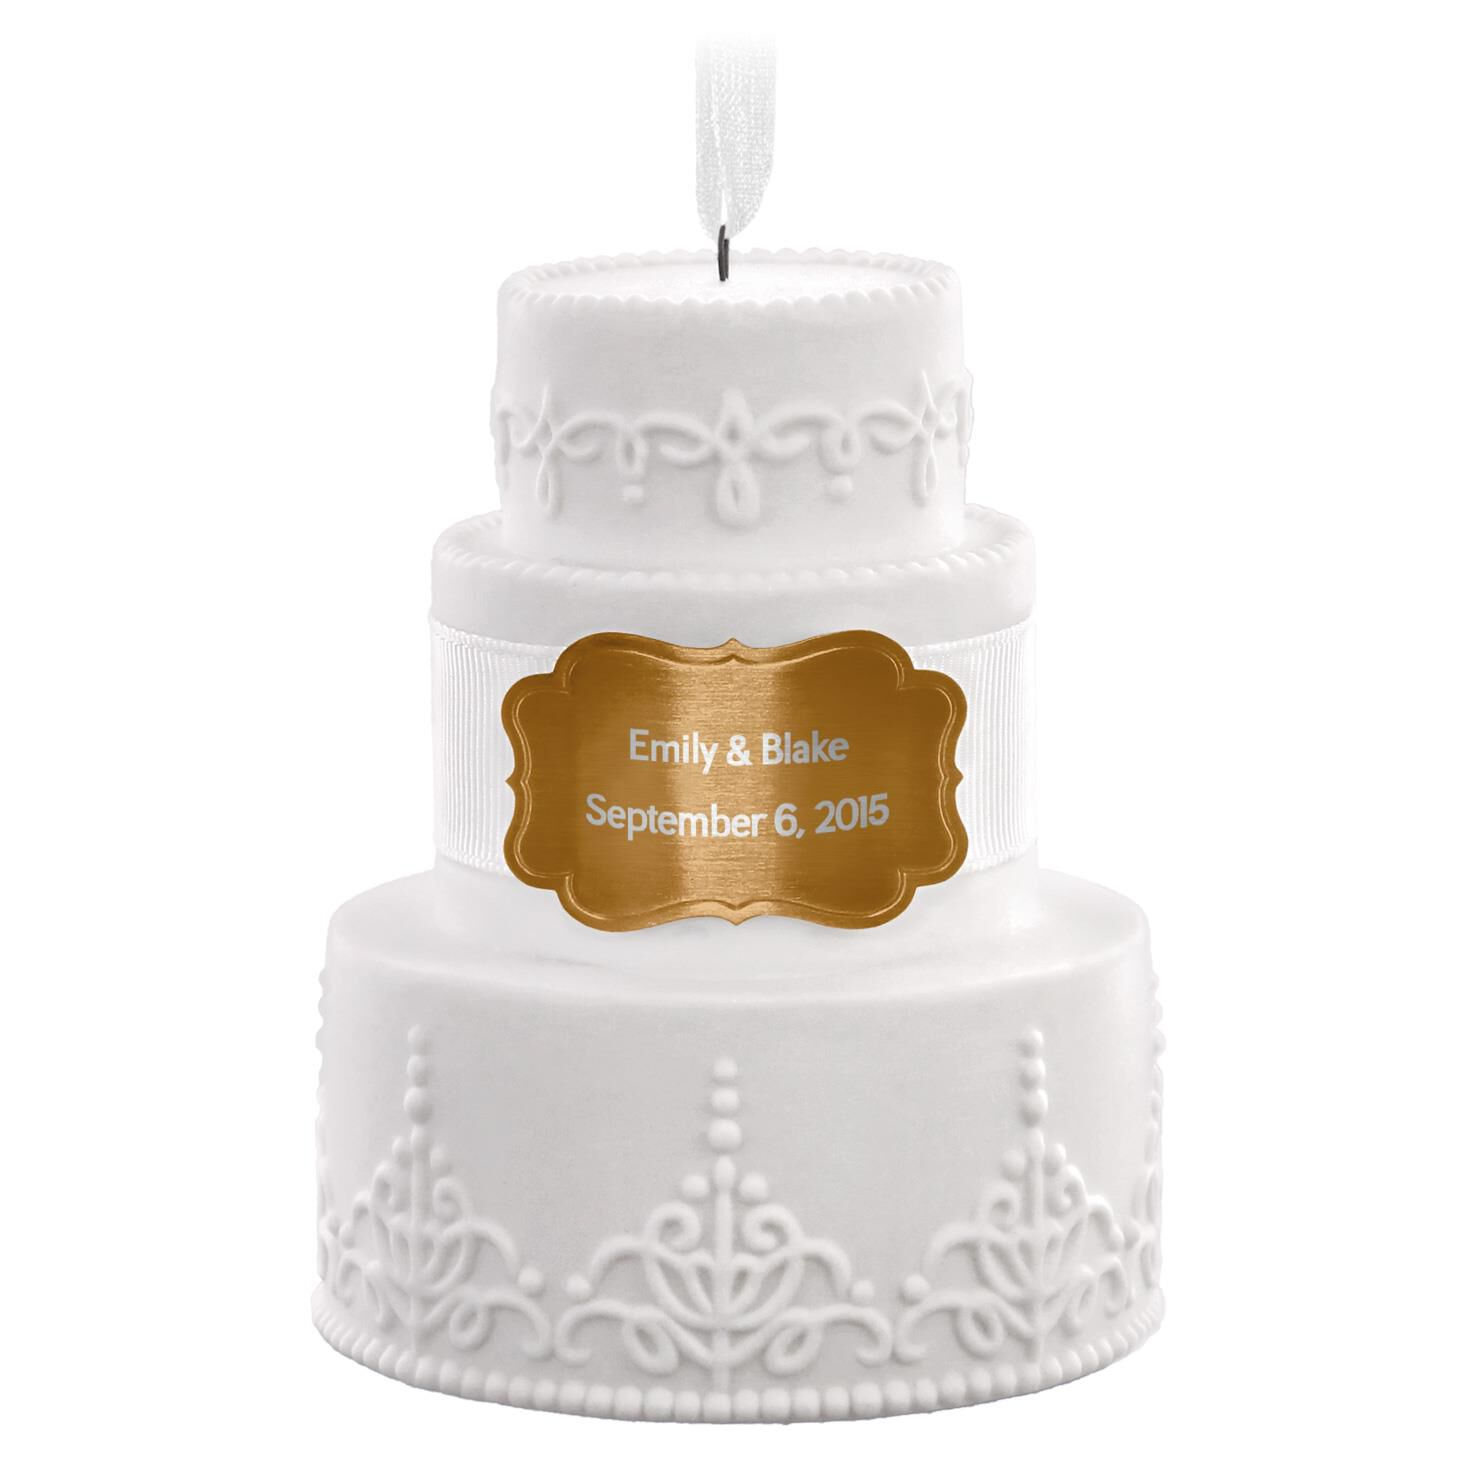 Wedding Cake Personalized Ornament - Personalized ...